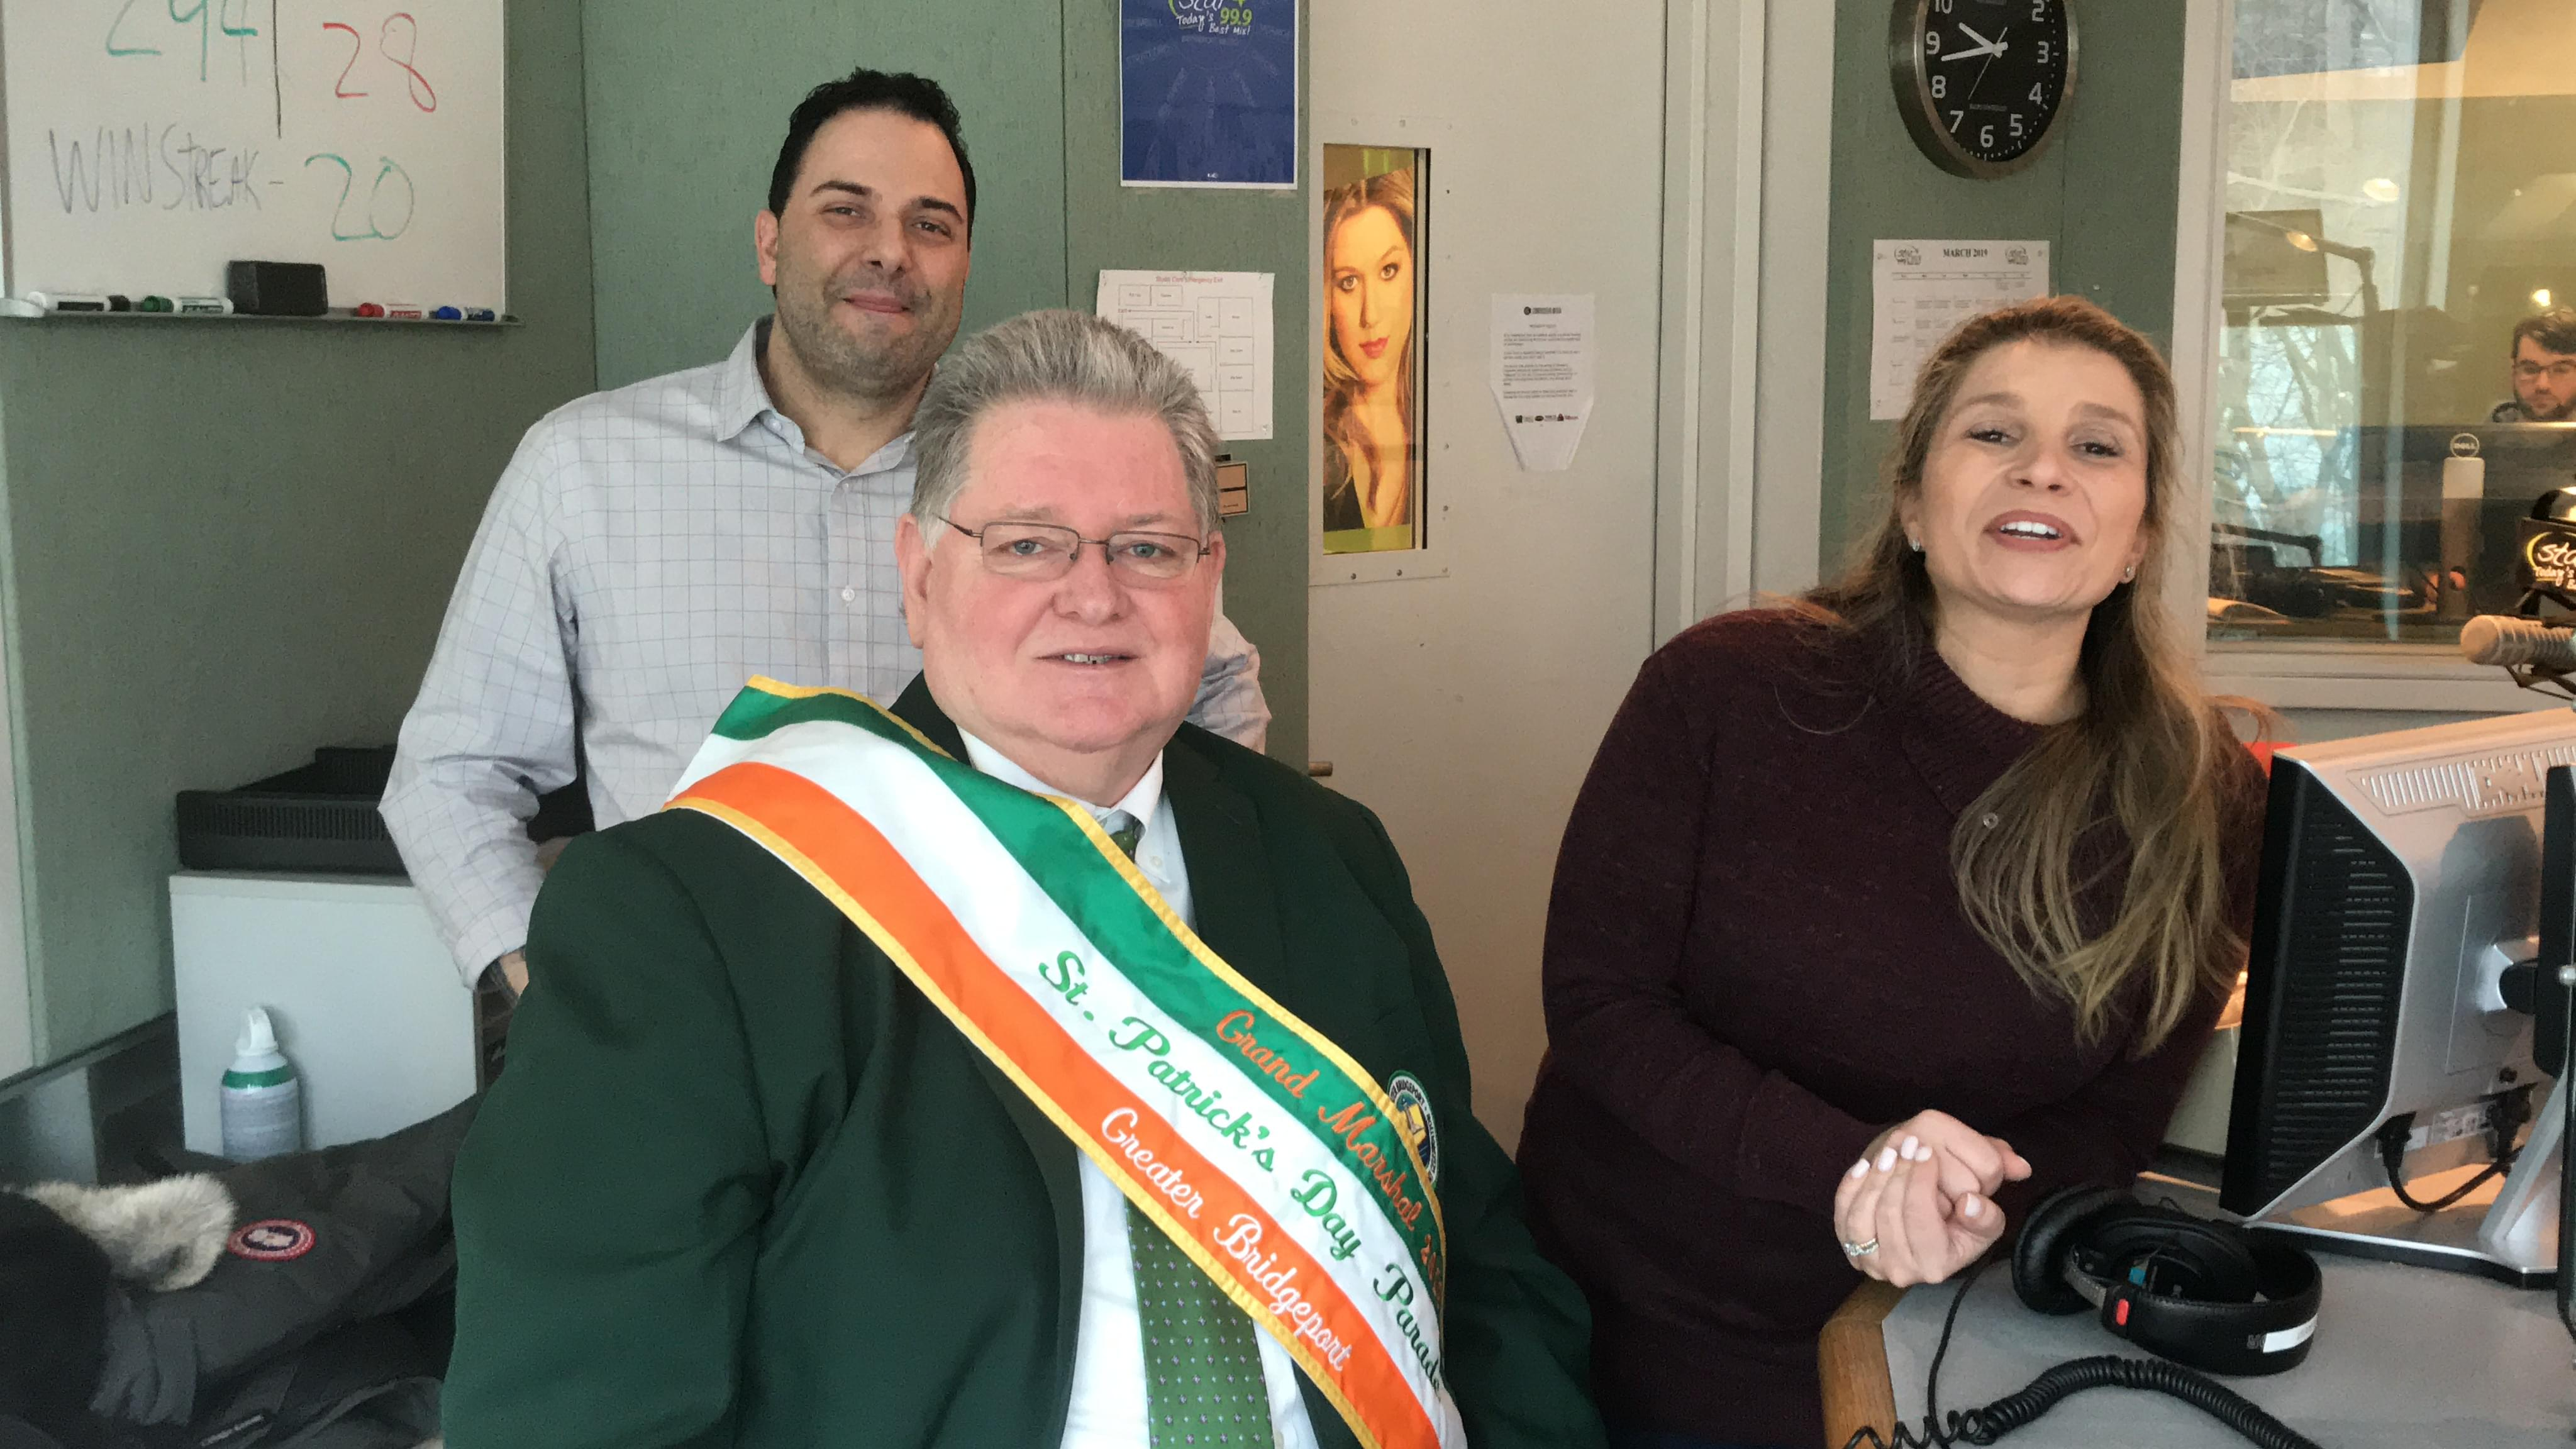 60 Seconds Behind the Scenes- Grand Marshal of the Bridgeport Parade, Peter Carroll